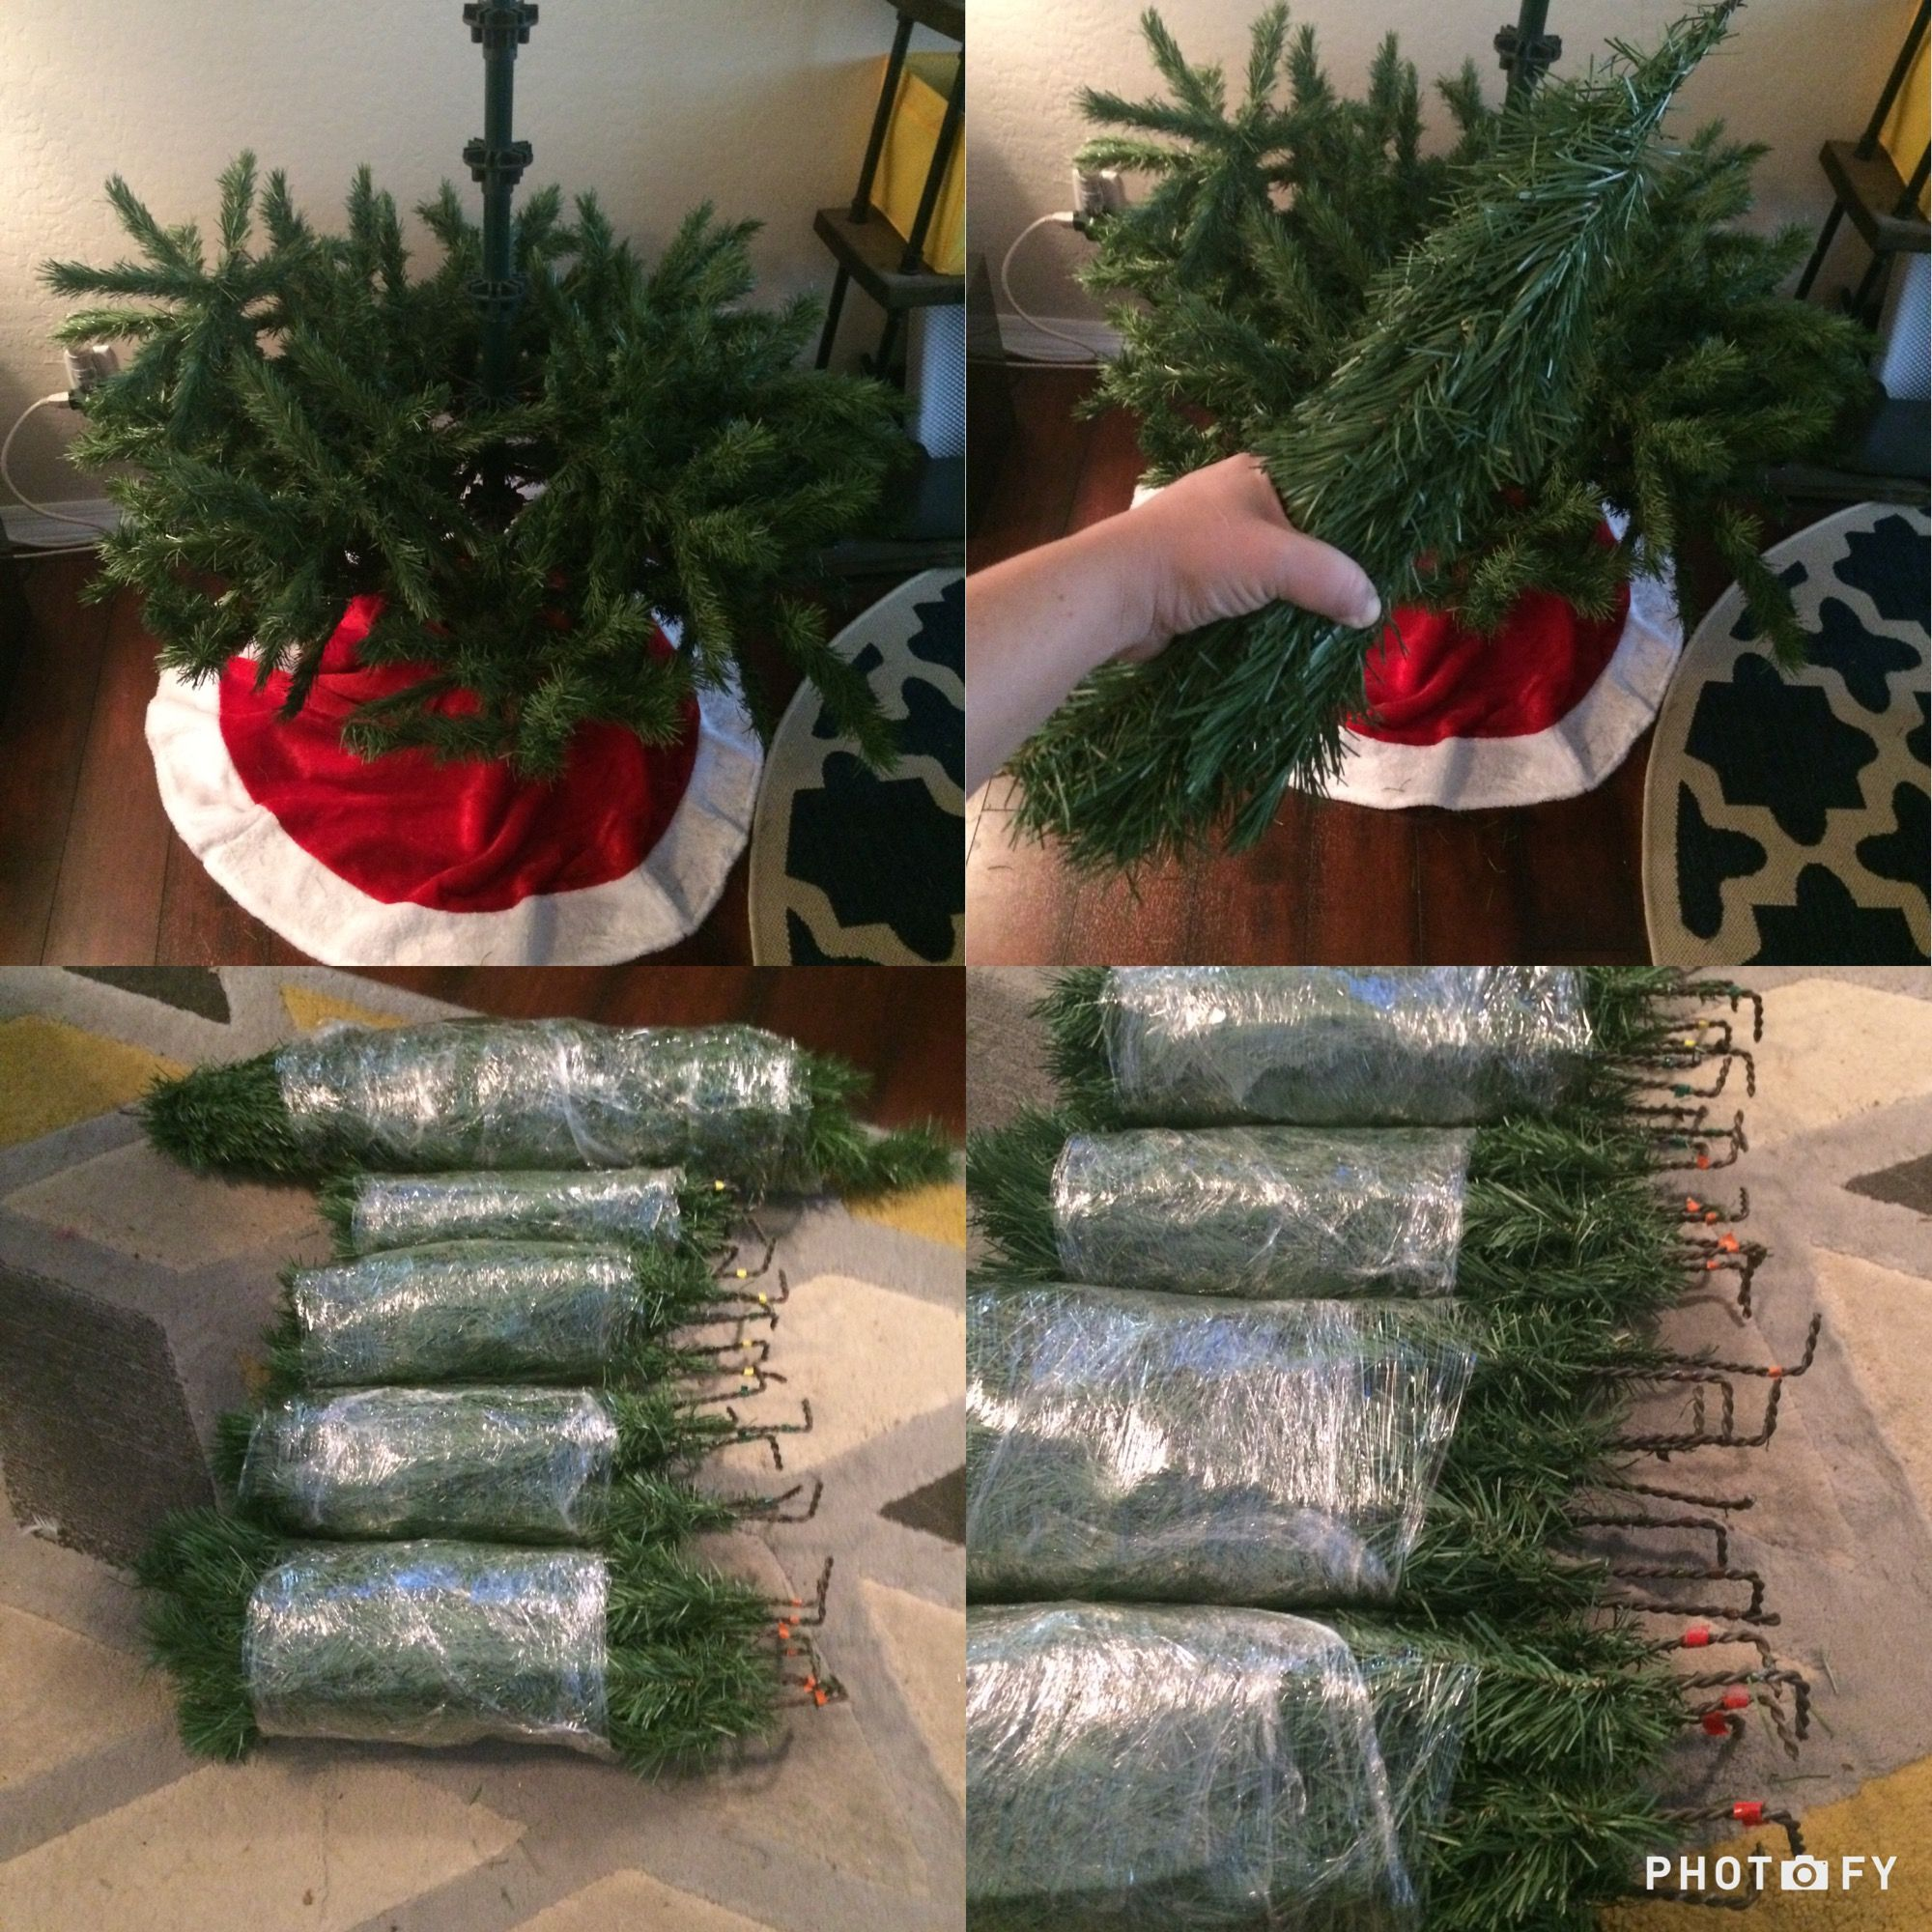 Christmas Tree Storage Made Simple 1 Compress All Branches From The Same Level 2 Wrap All 5 9 Christmas Tree Storage Fake Christmas Trees Christmas Spirit